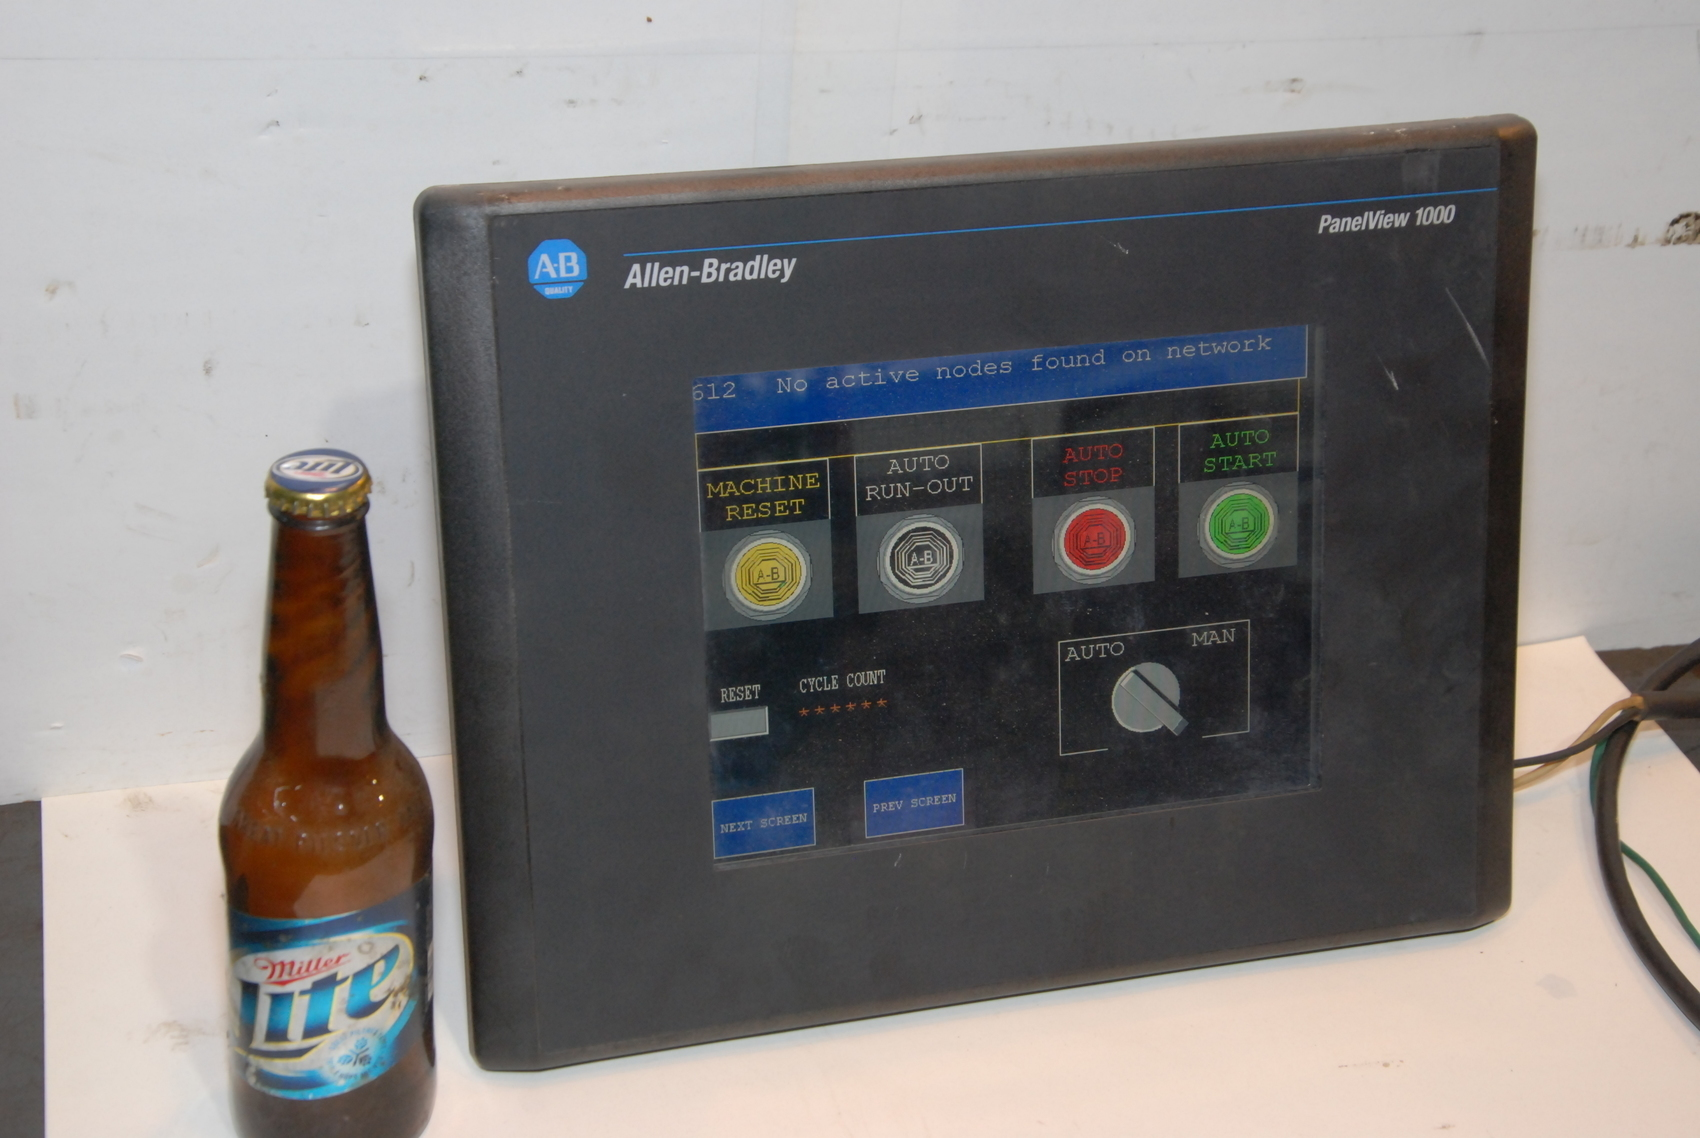 Allen-Bradley 2711-T10C9 PanelView 1000 Color Touch Screen monitor